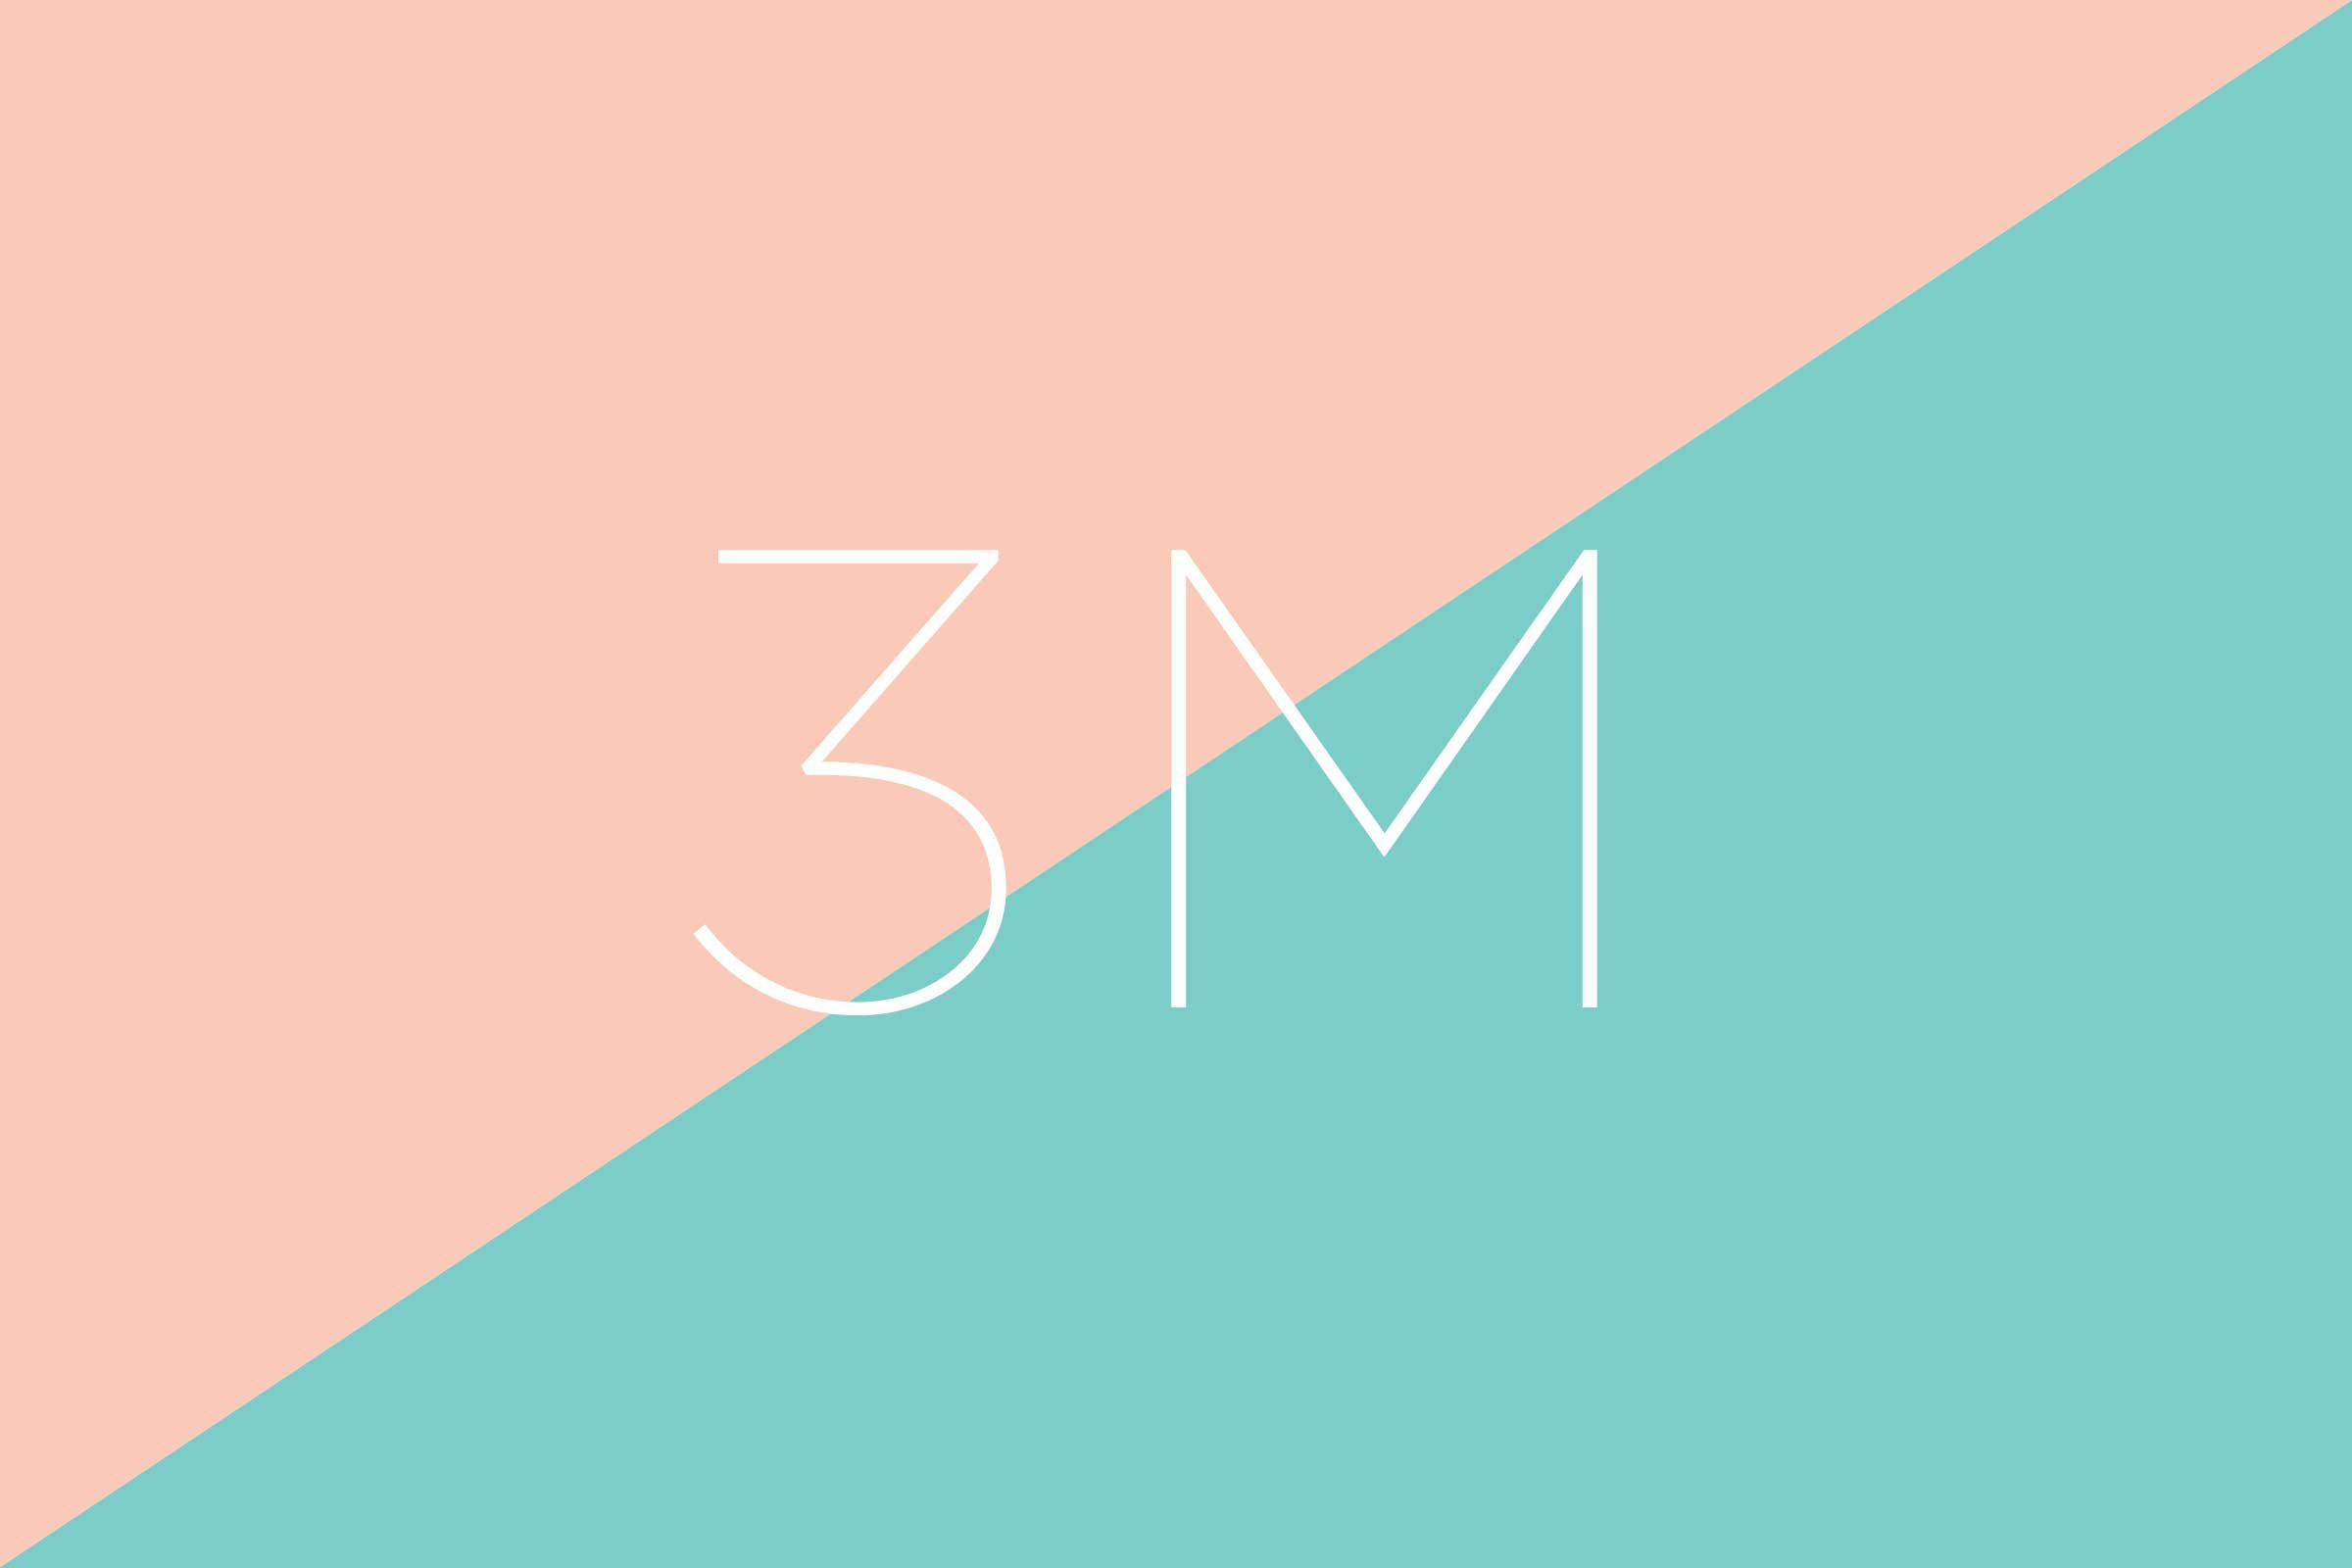 What does 3M stand for?